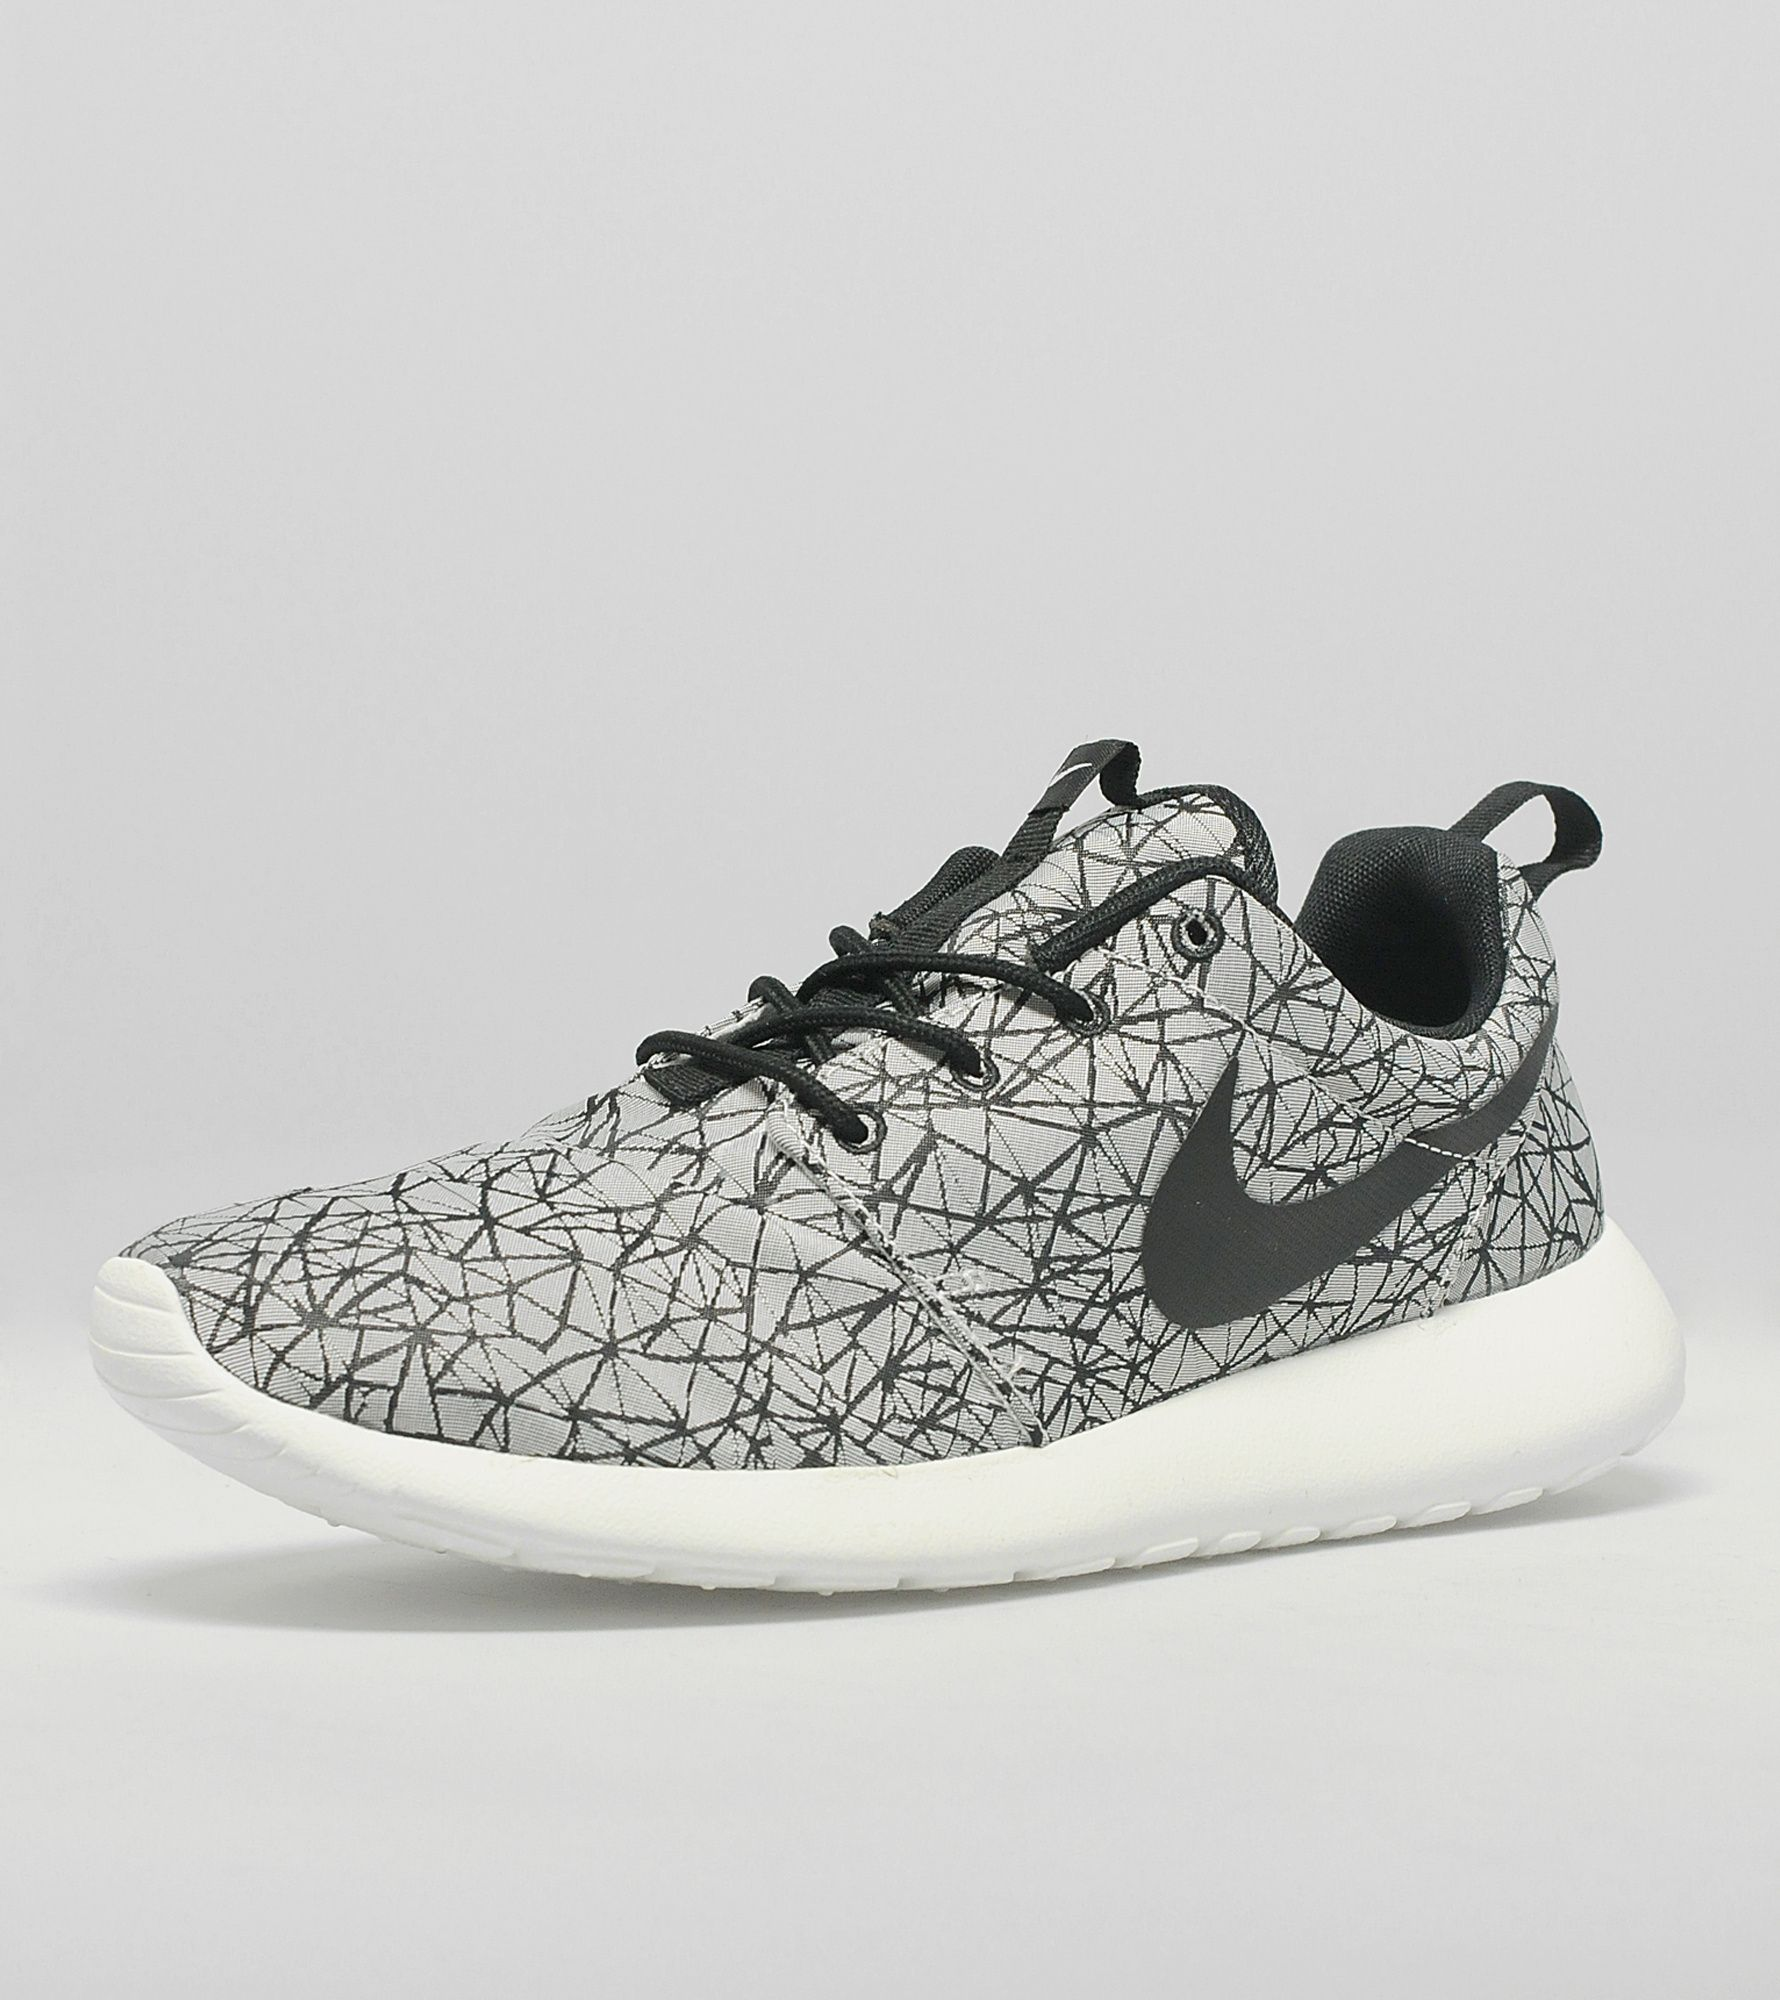 d07039efa894 ... promo code for nike roshe run gpx geometric 69471 2fb5a